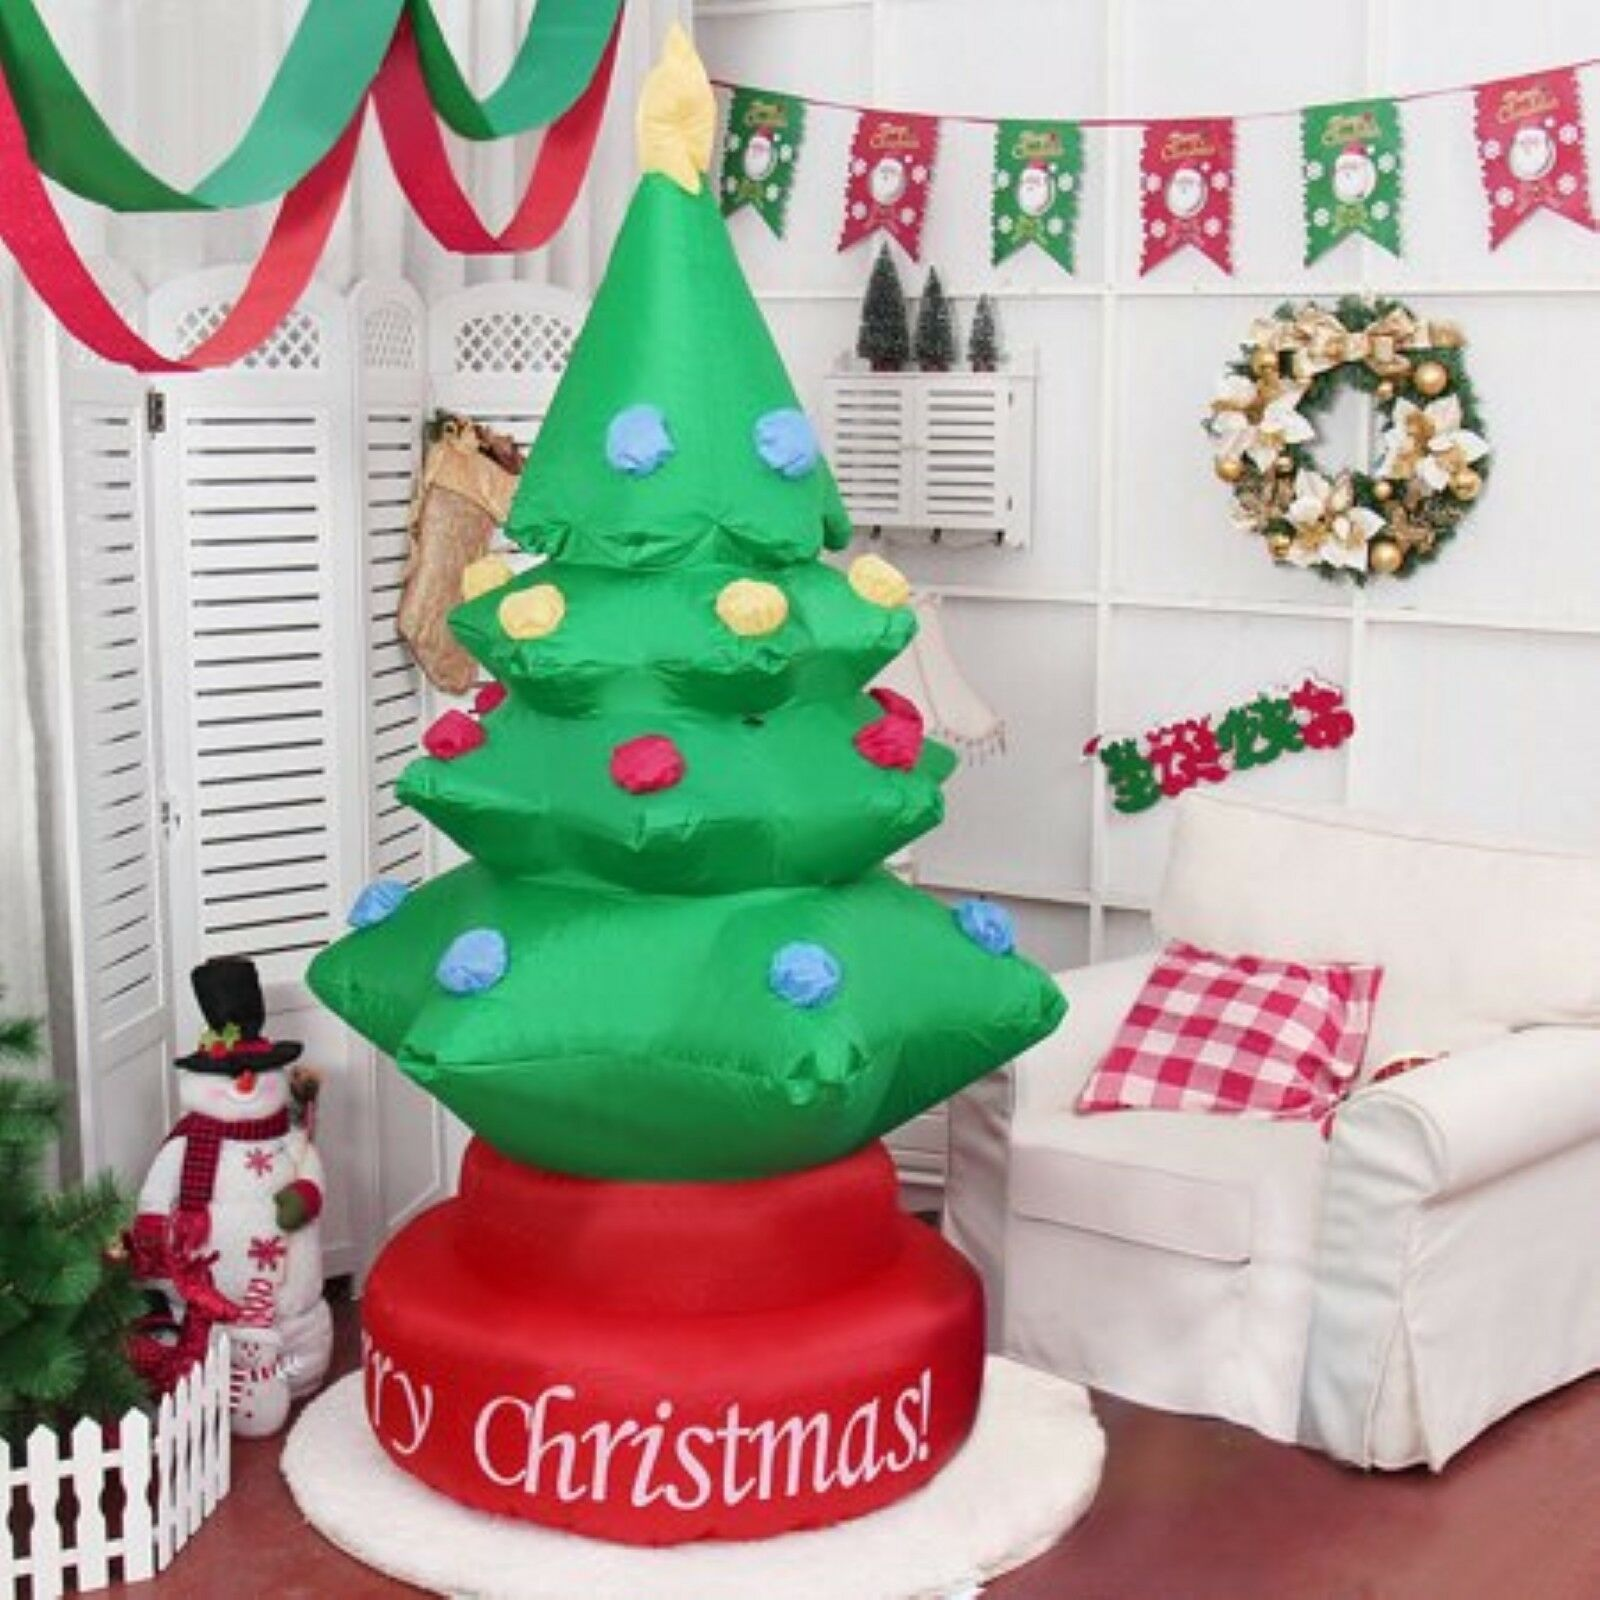 Gymax 7Ft Rotary Inflatable Christmas Tree Outdoor Holiday Home Yard Decoration Blower